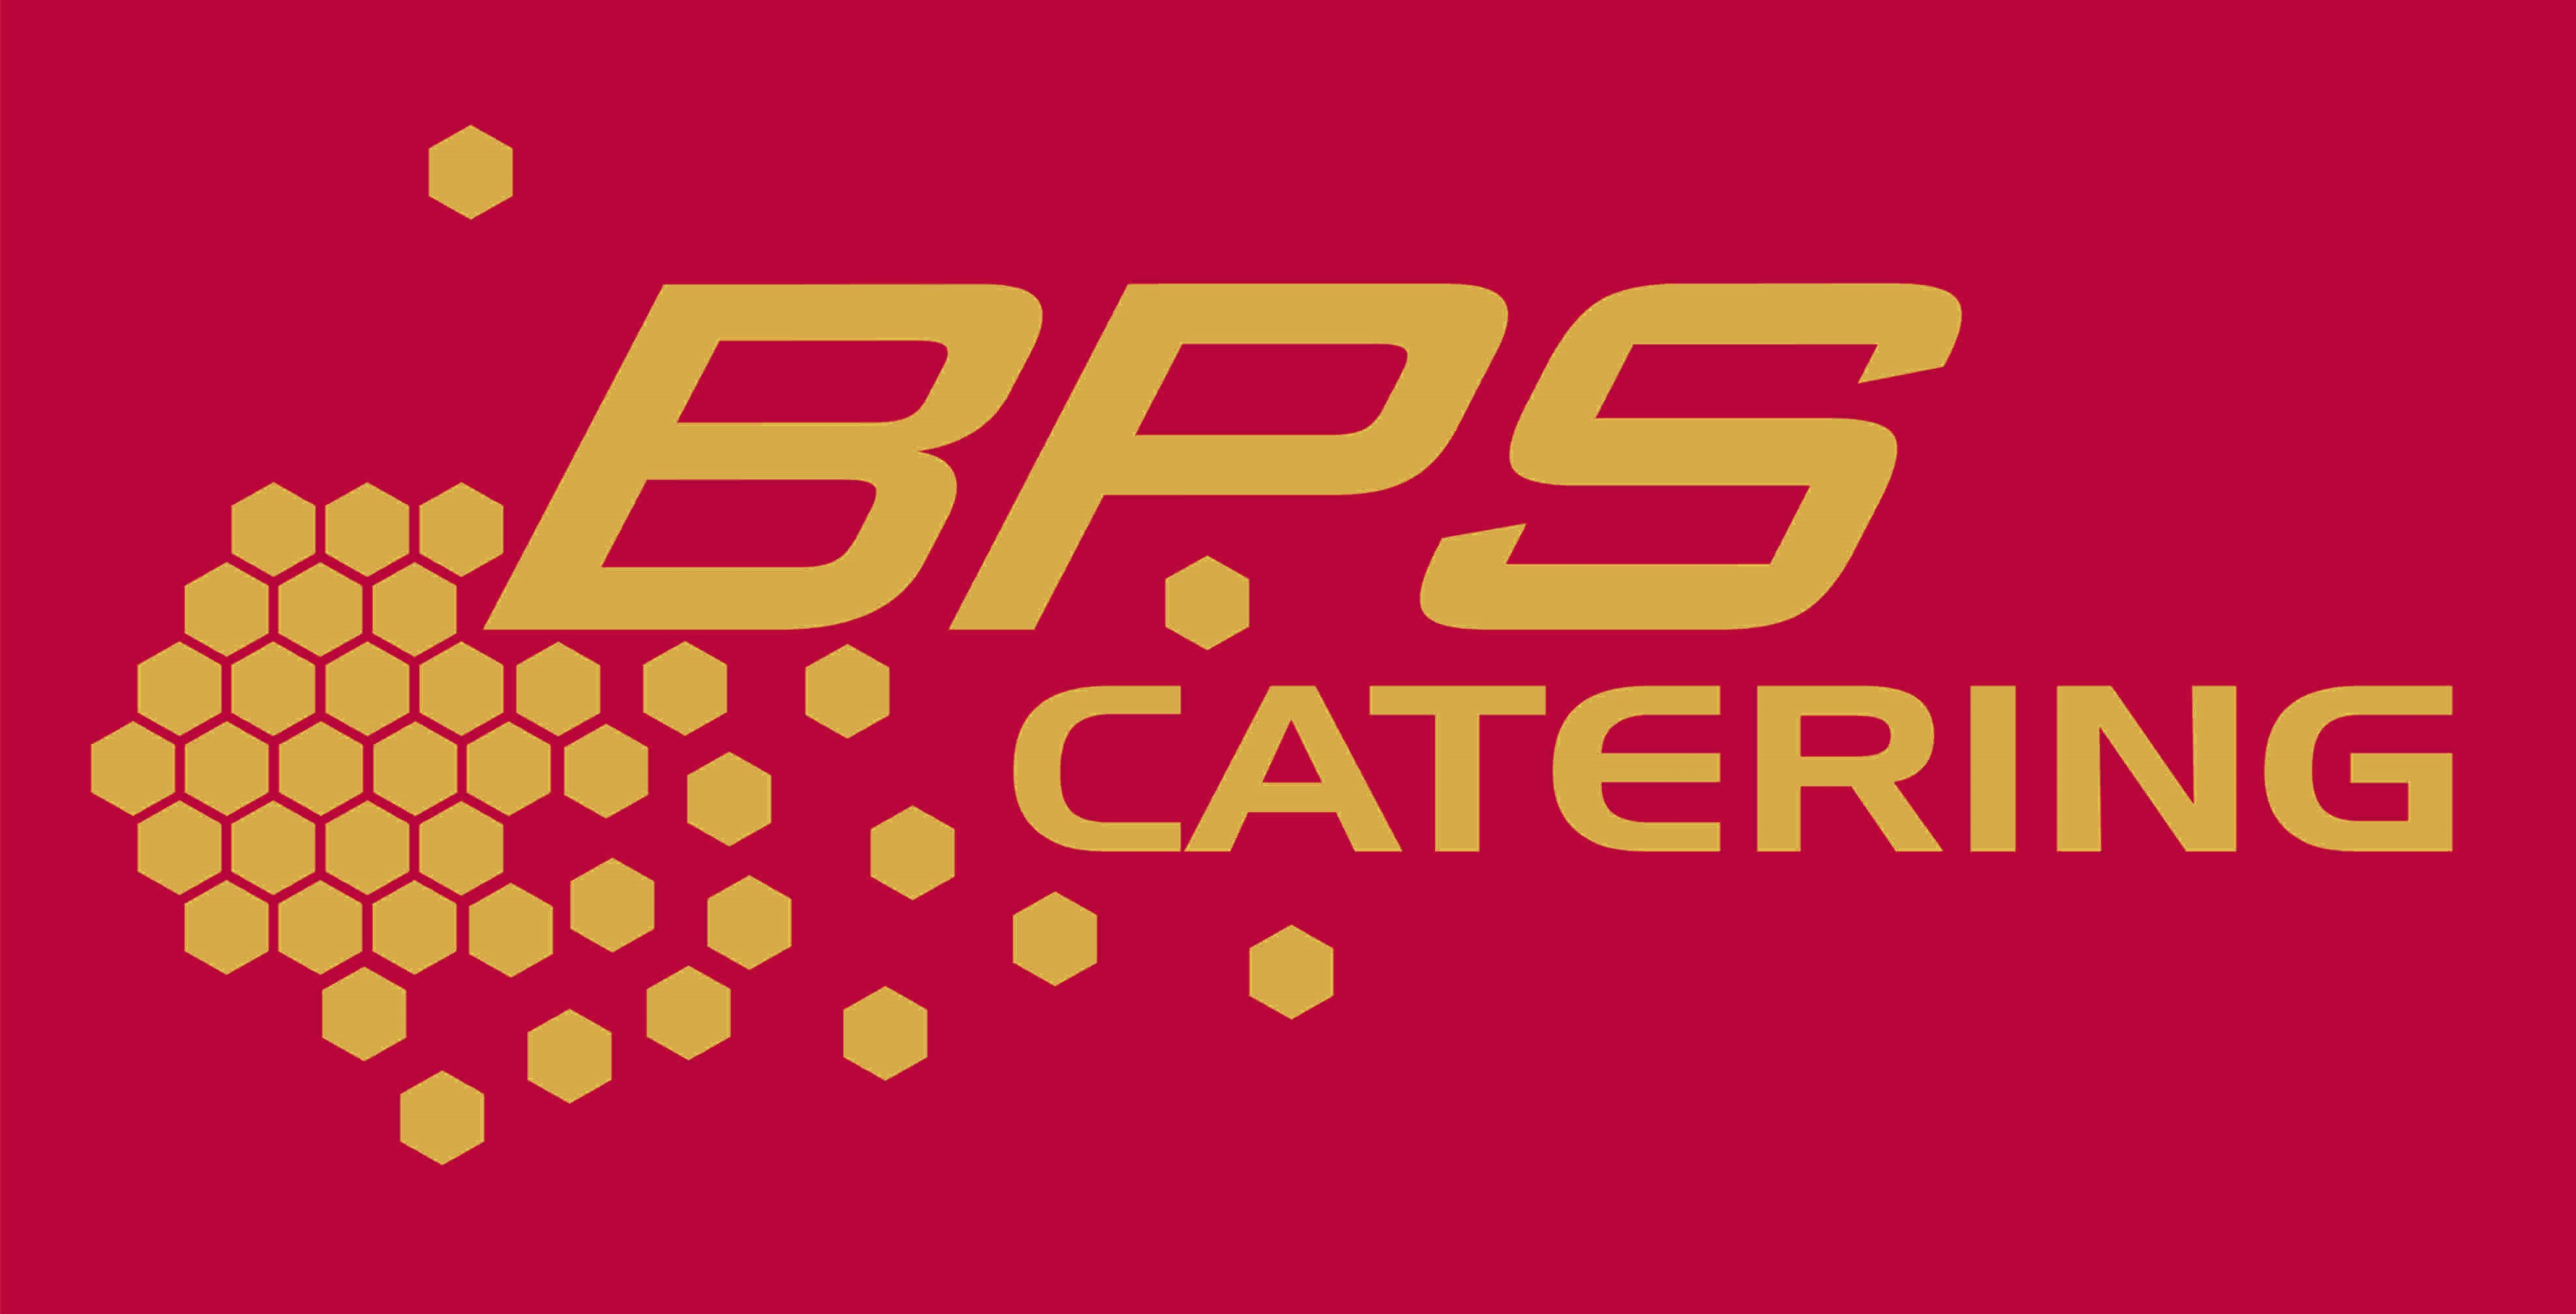 http://www.bpscatering.pl/